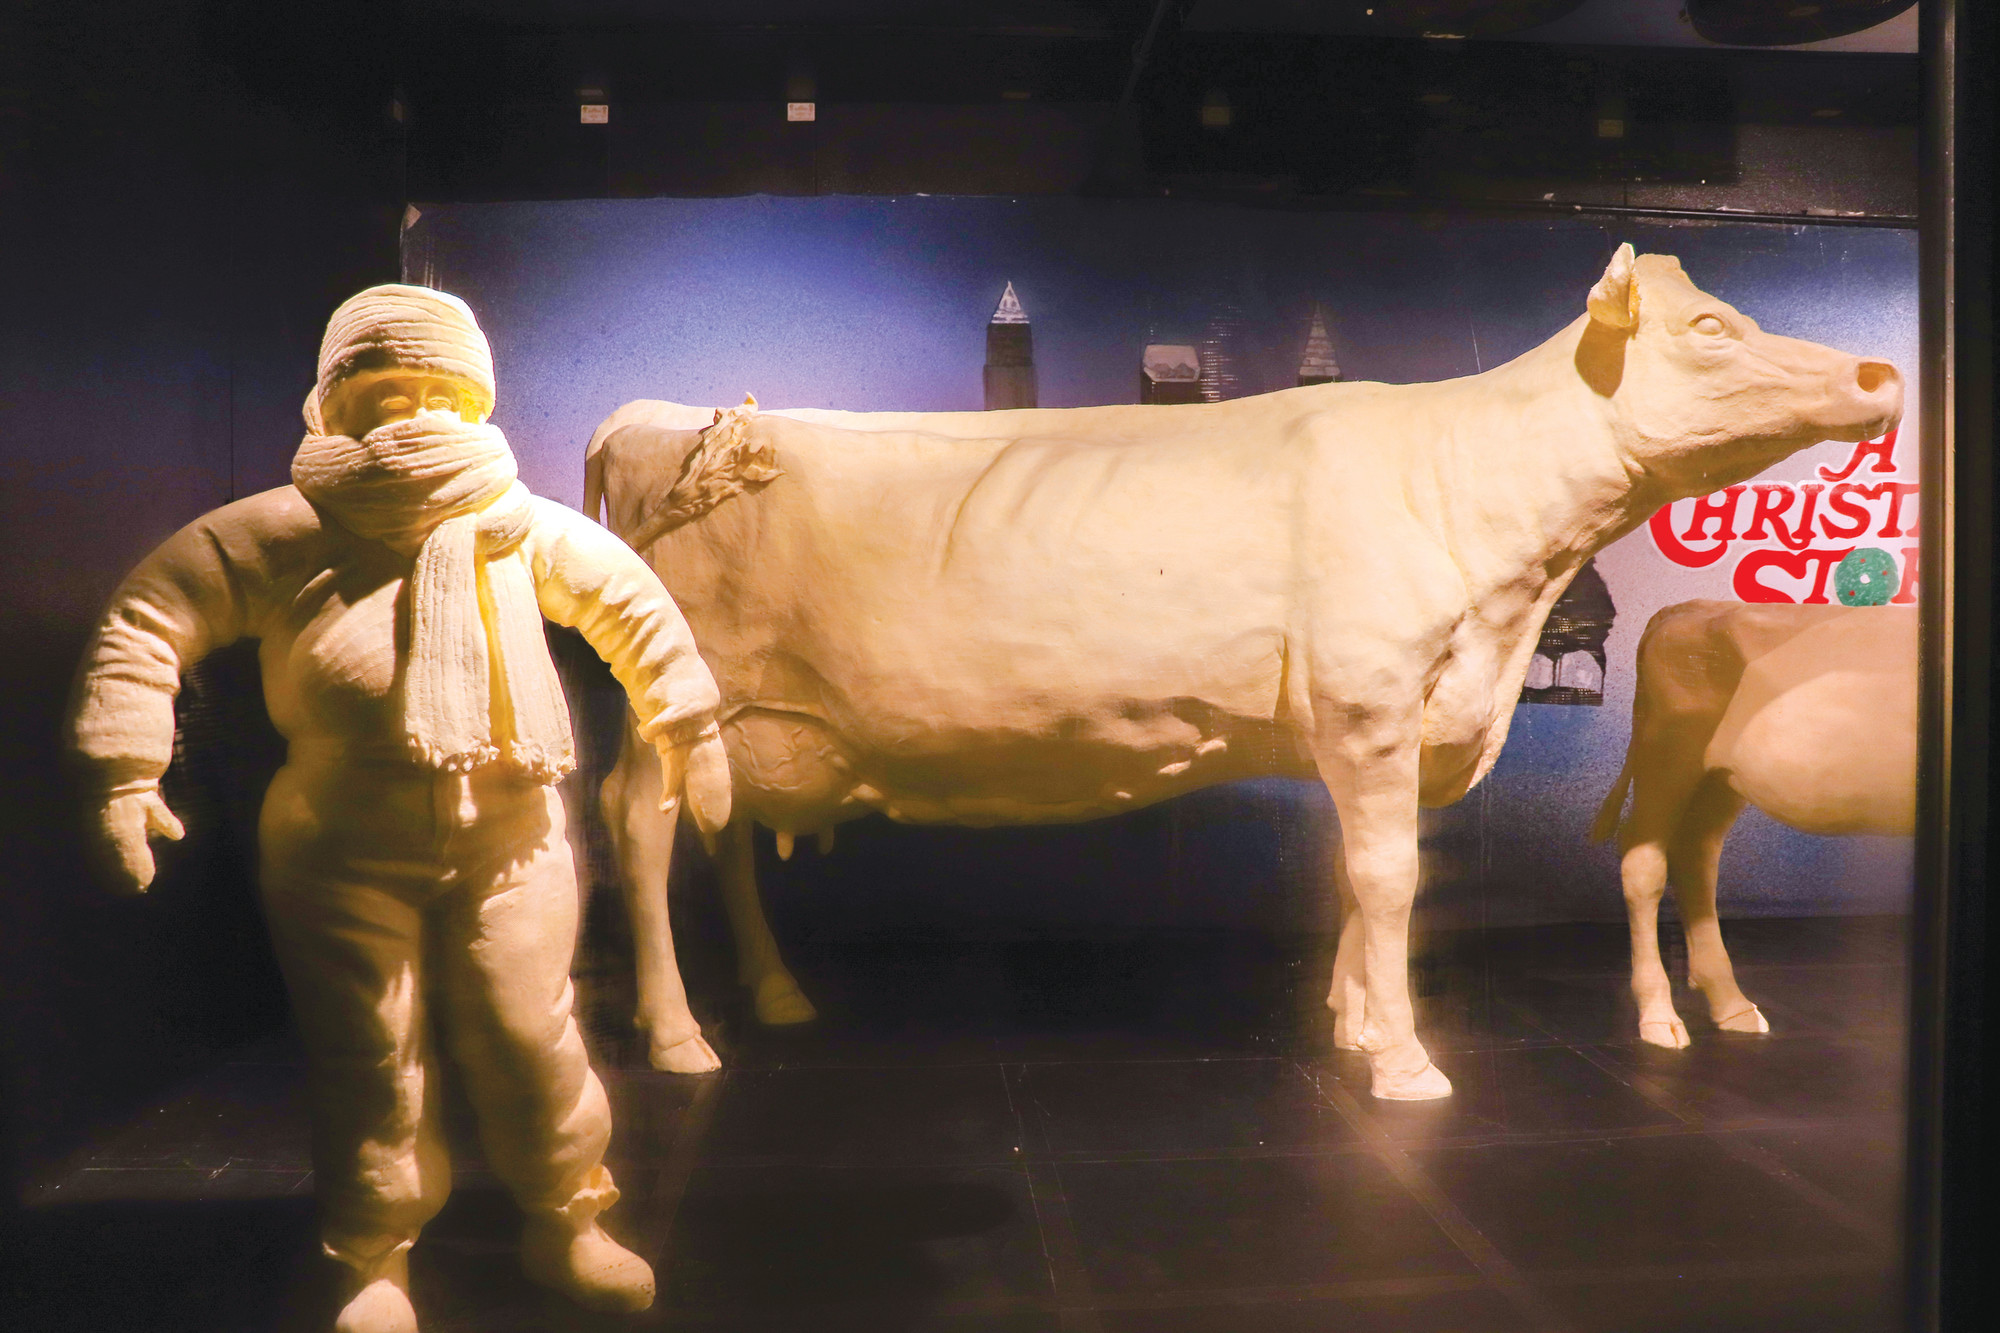 butter sculptures honor a christmas story